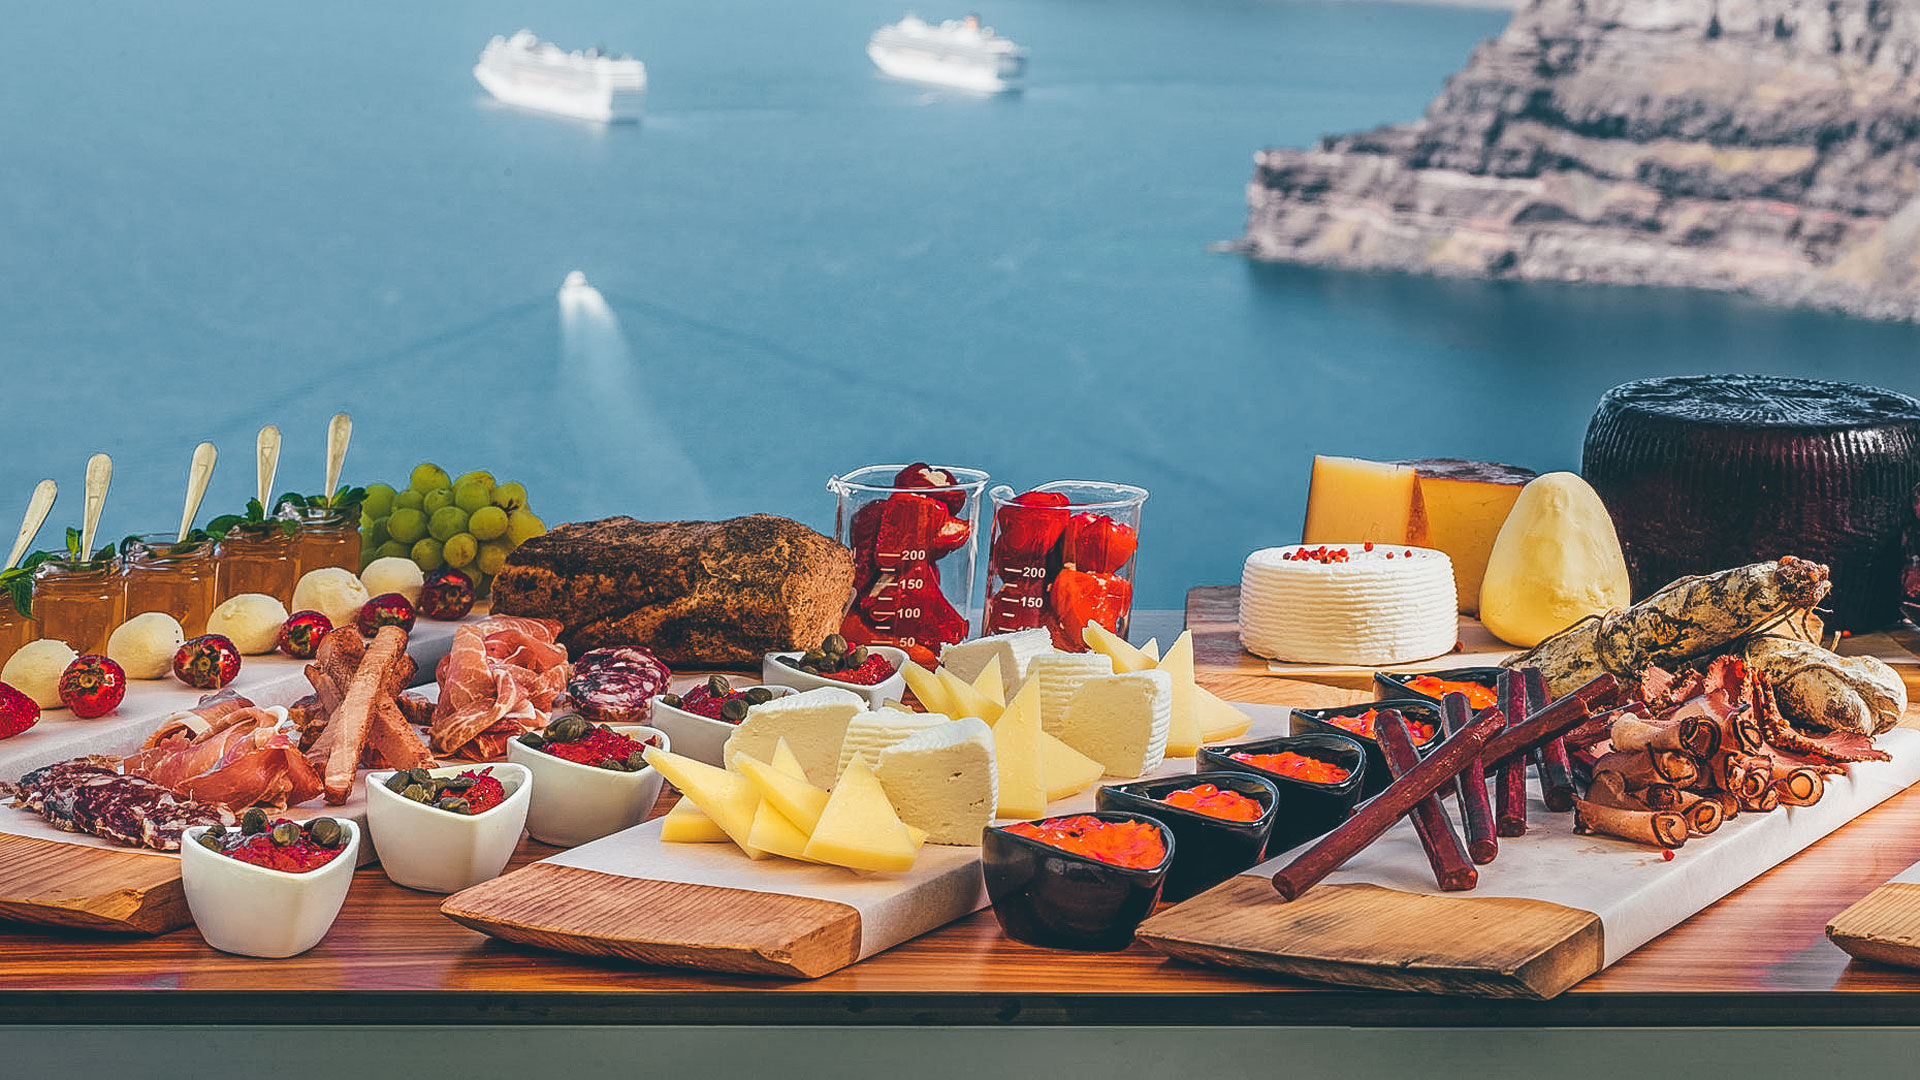 From touring the wineries, to wine-tasting accompanied by local cheese and cold cuts, this is where Santorini has chosen to bottle much of its authenticity